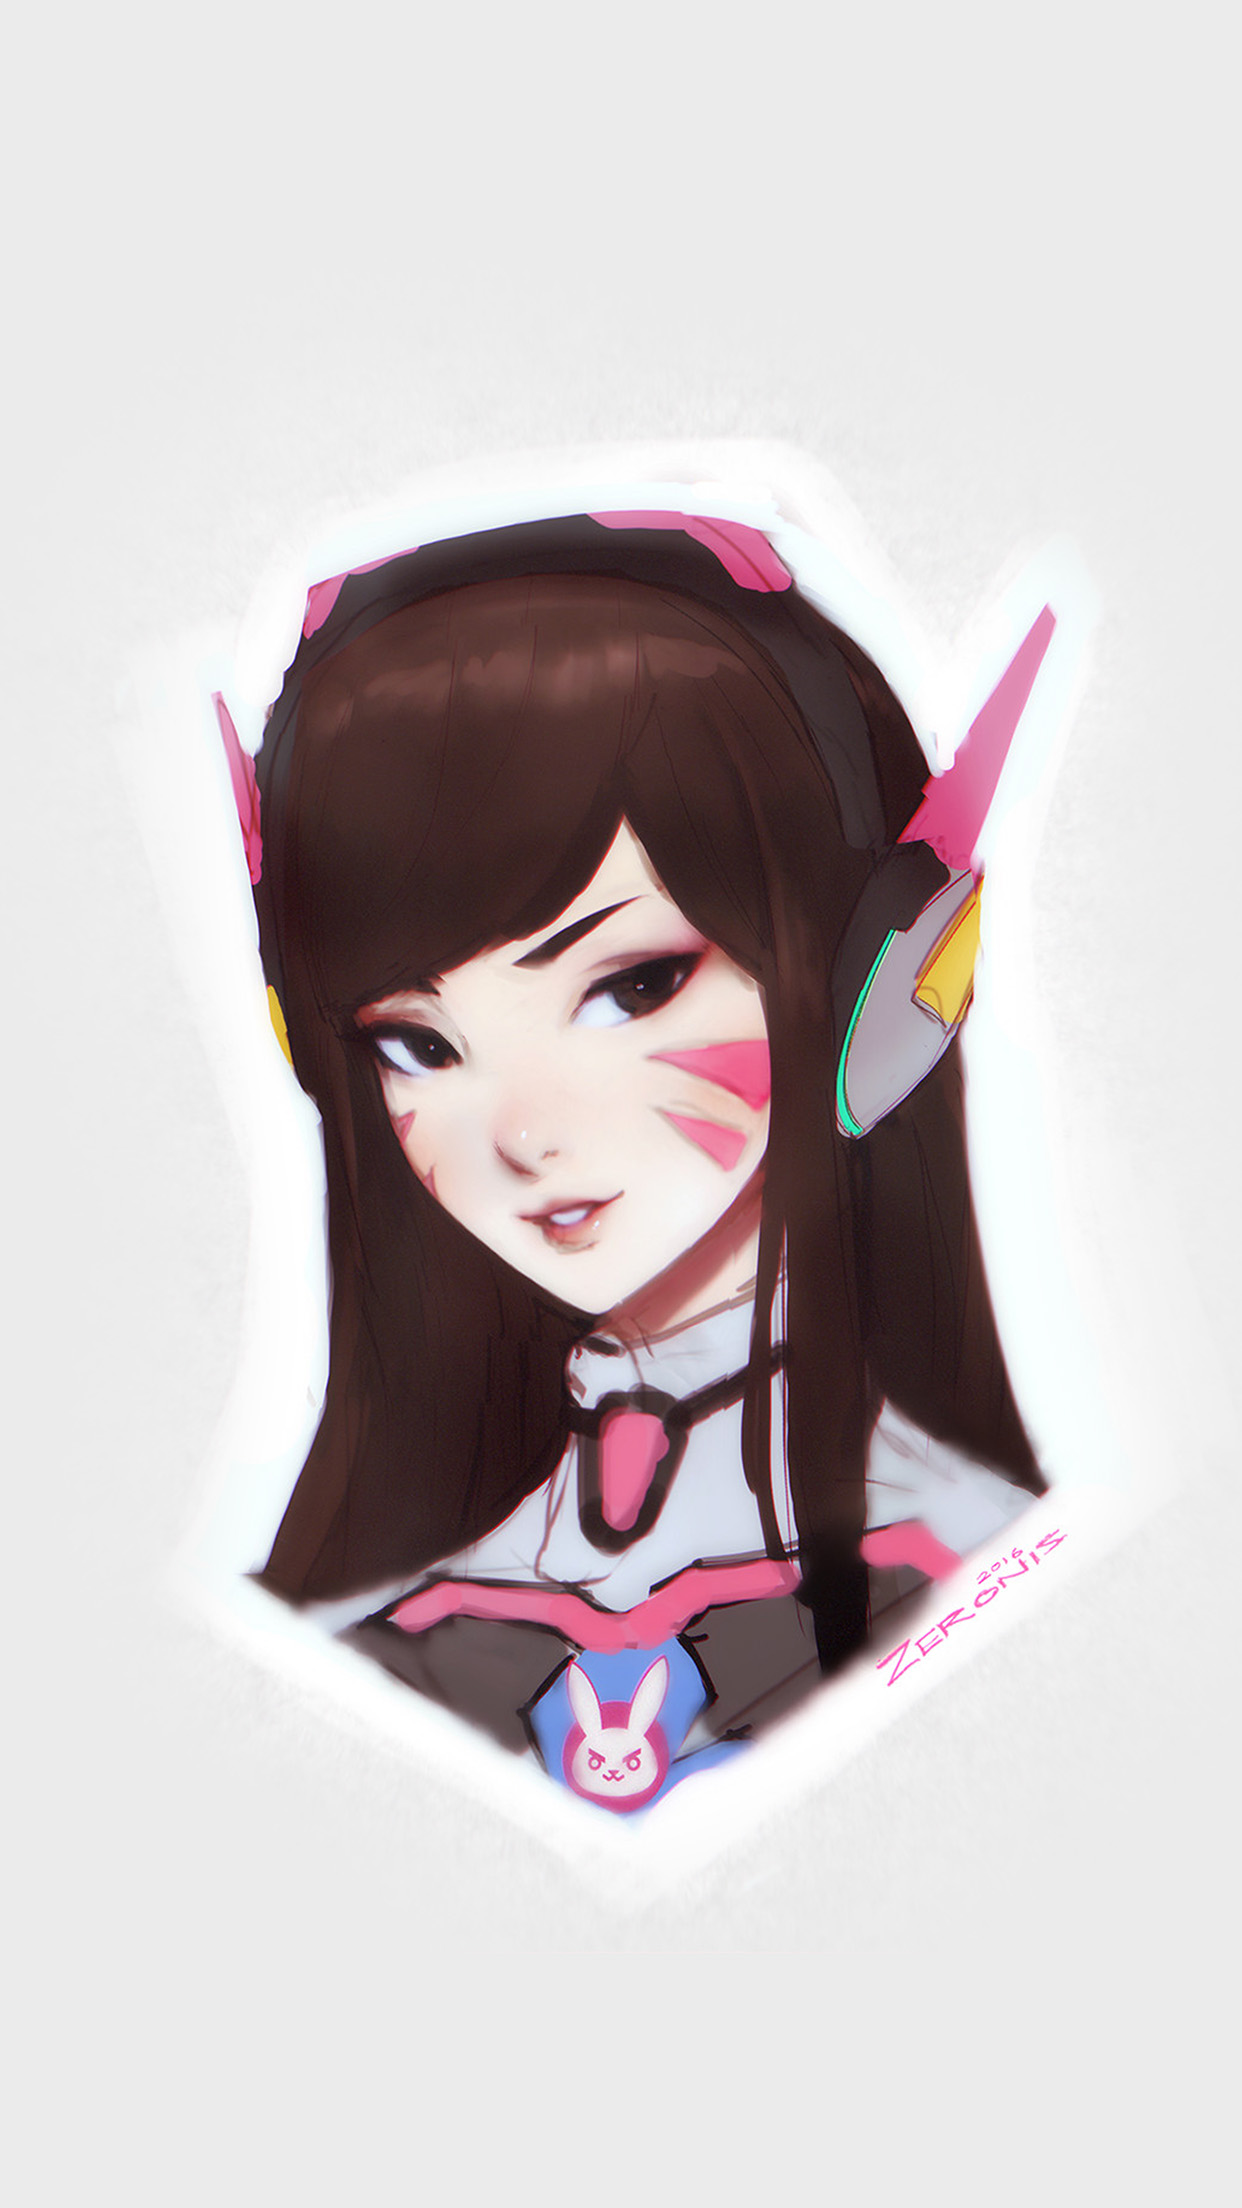 Song Hana Overwatch Chracter Game Illustration Art Android wallpaper